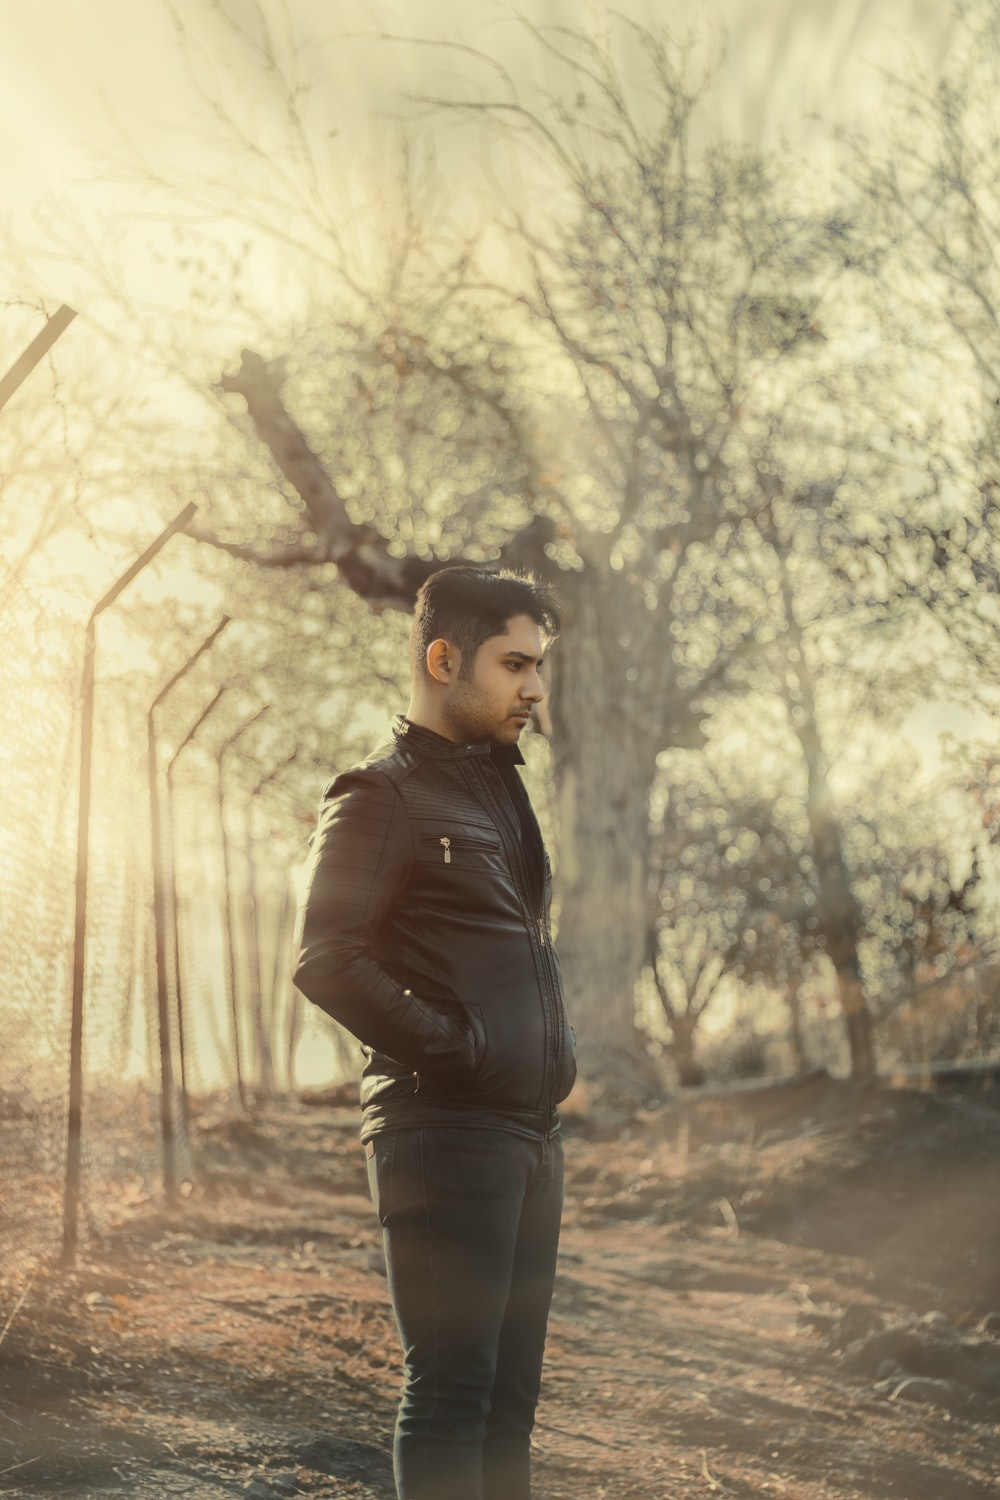 man in black leather jacket standing near trees during daytime